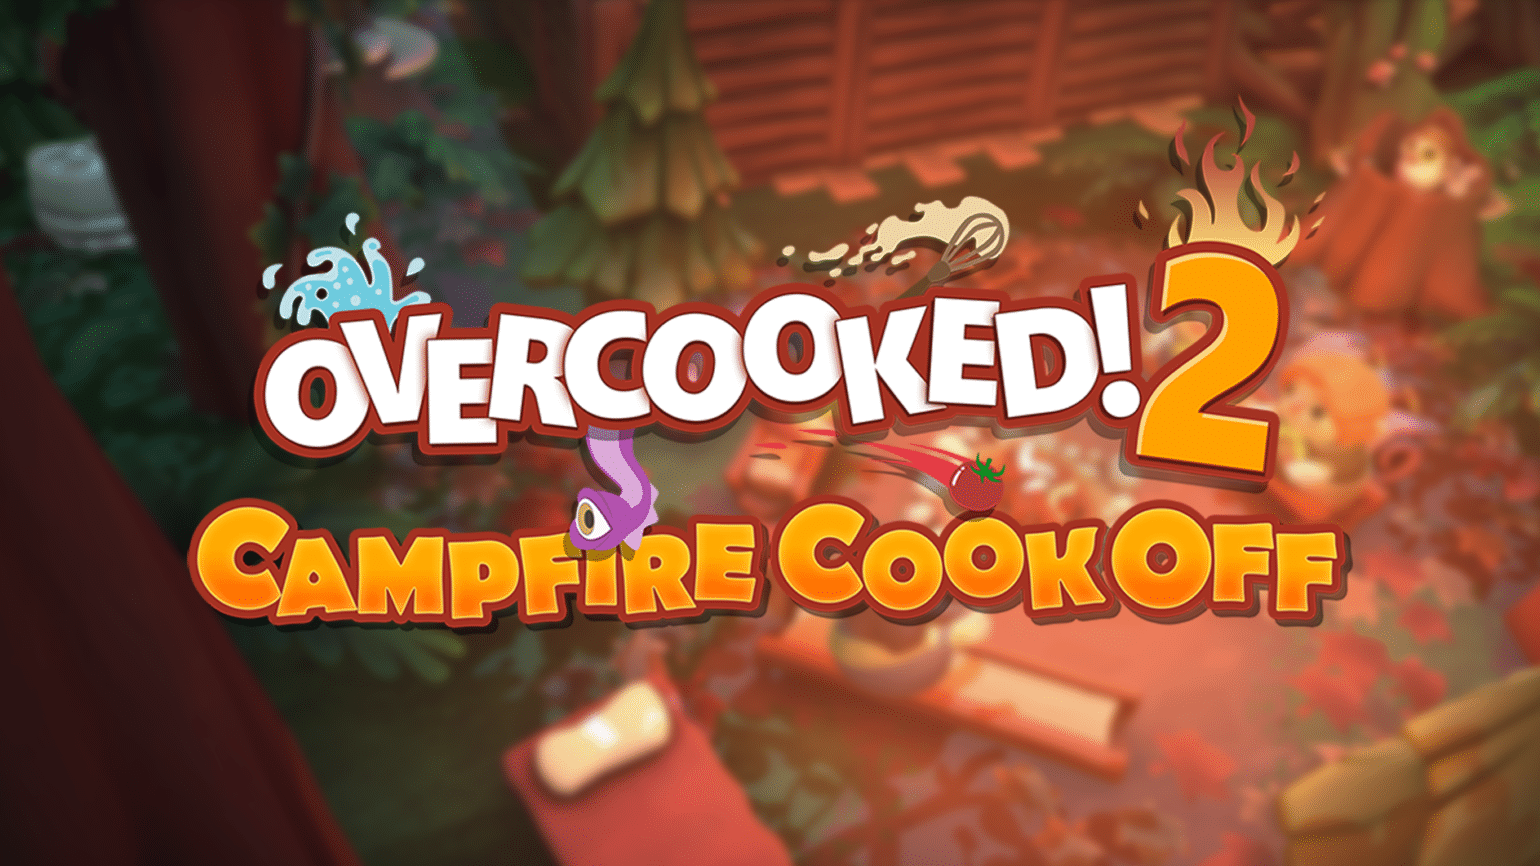 overcooked! 2 campfire cookoff